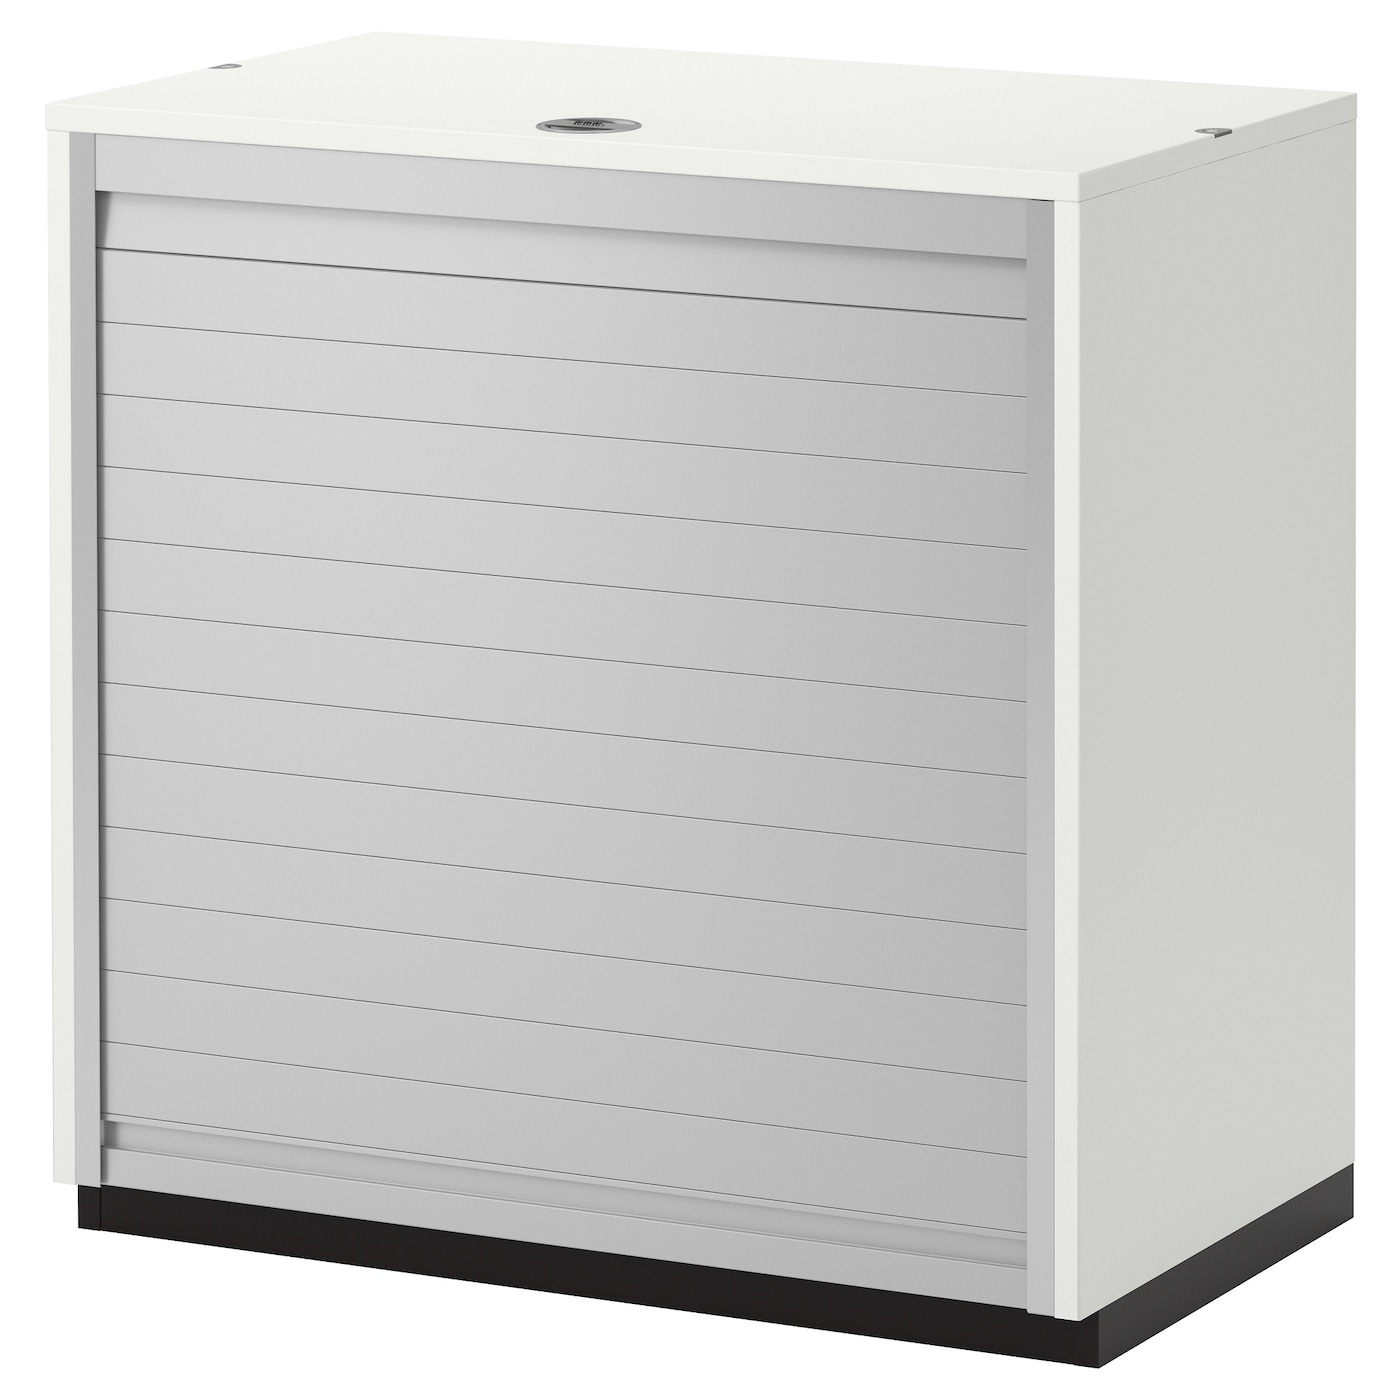 Galant Roll Front Cabinet White 80x80 Cm Ikea